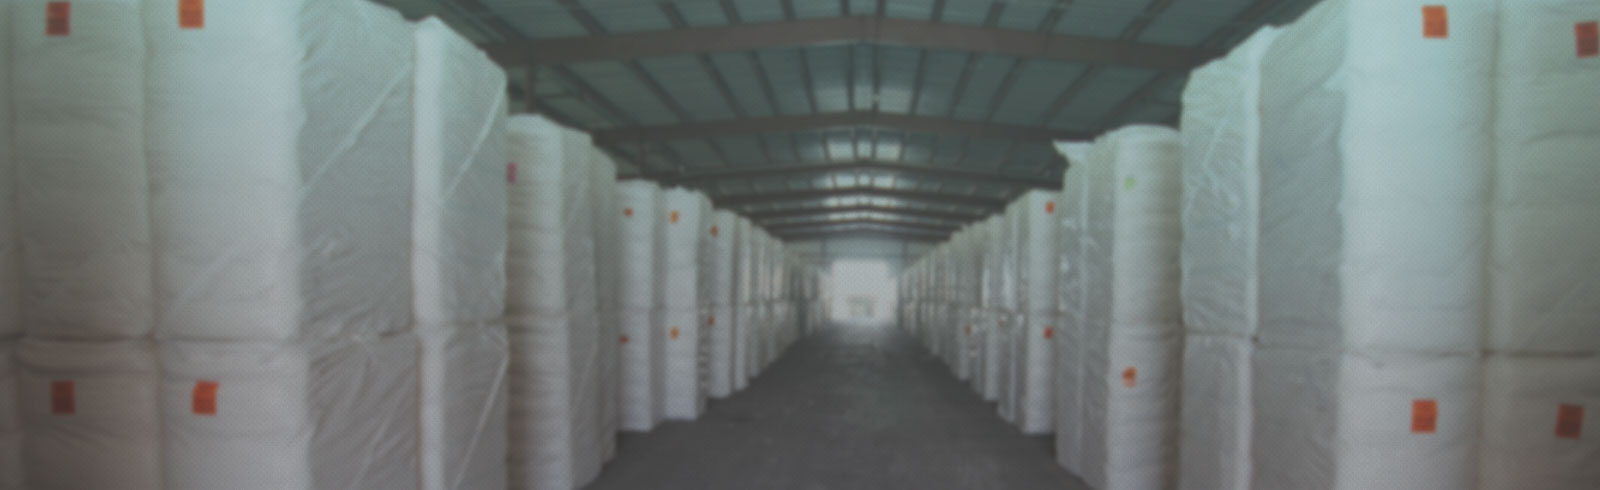 Cotton Bales in Warehouse